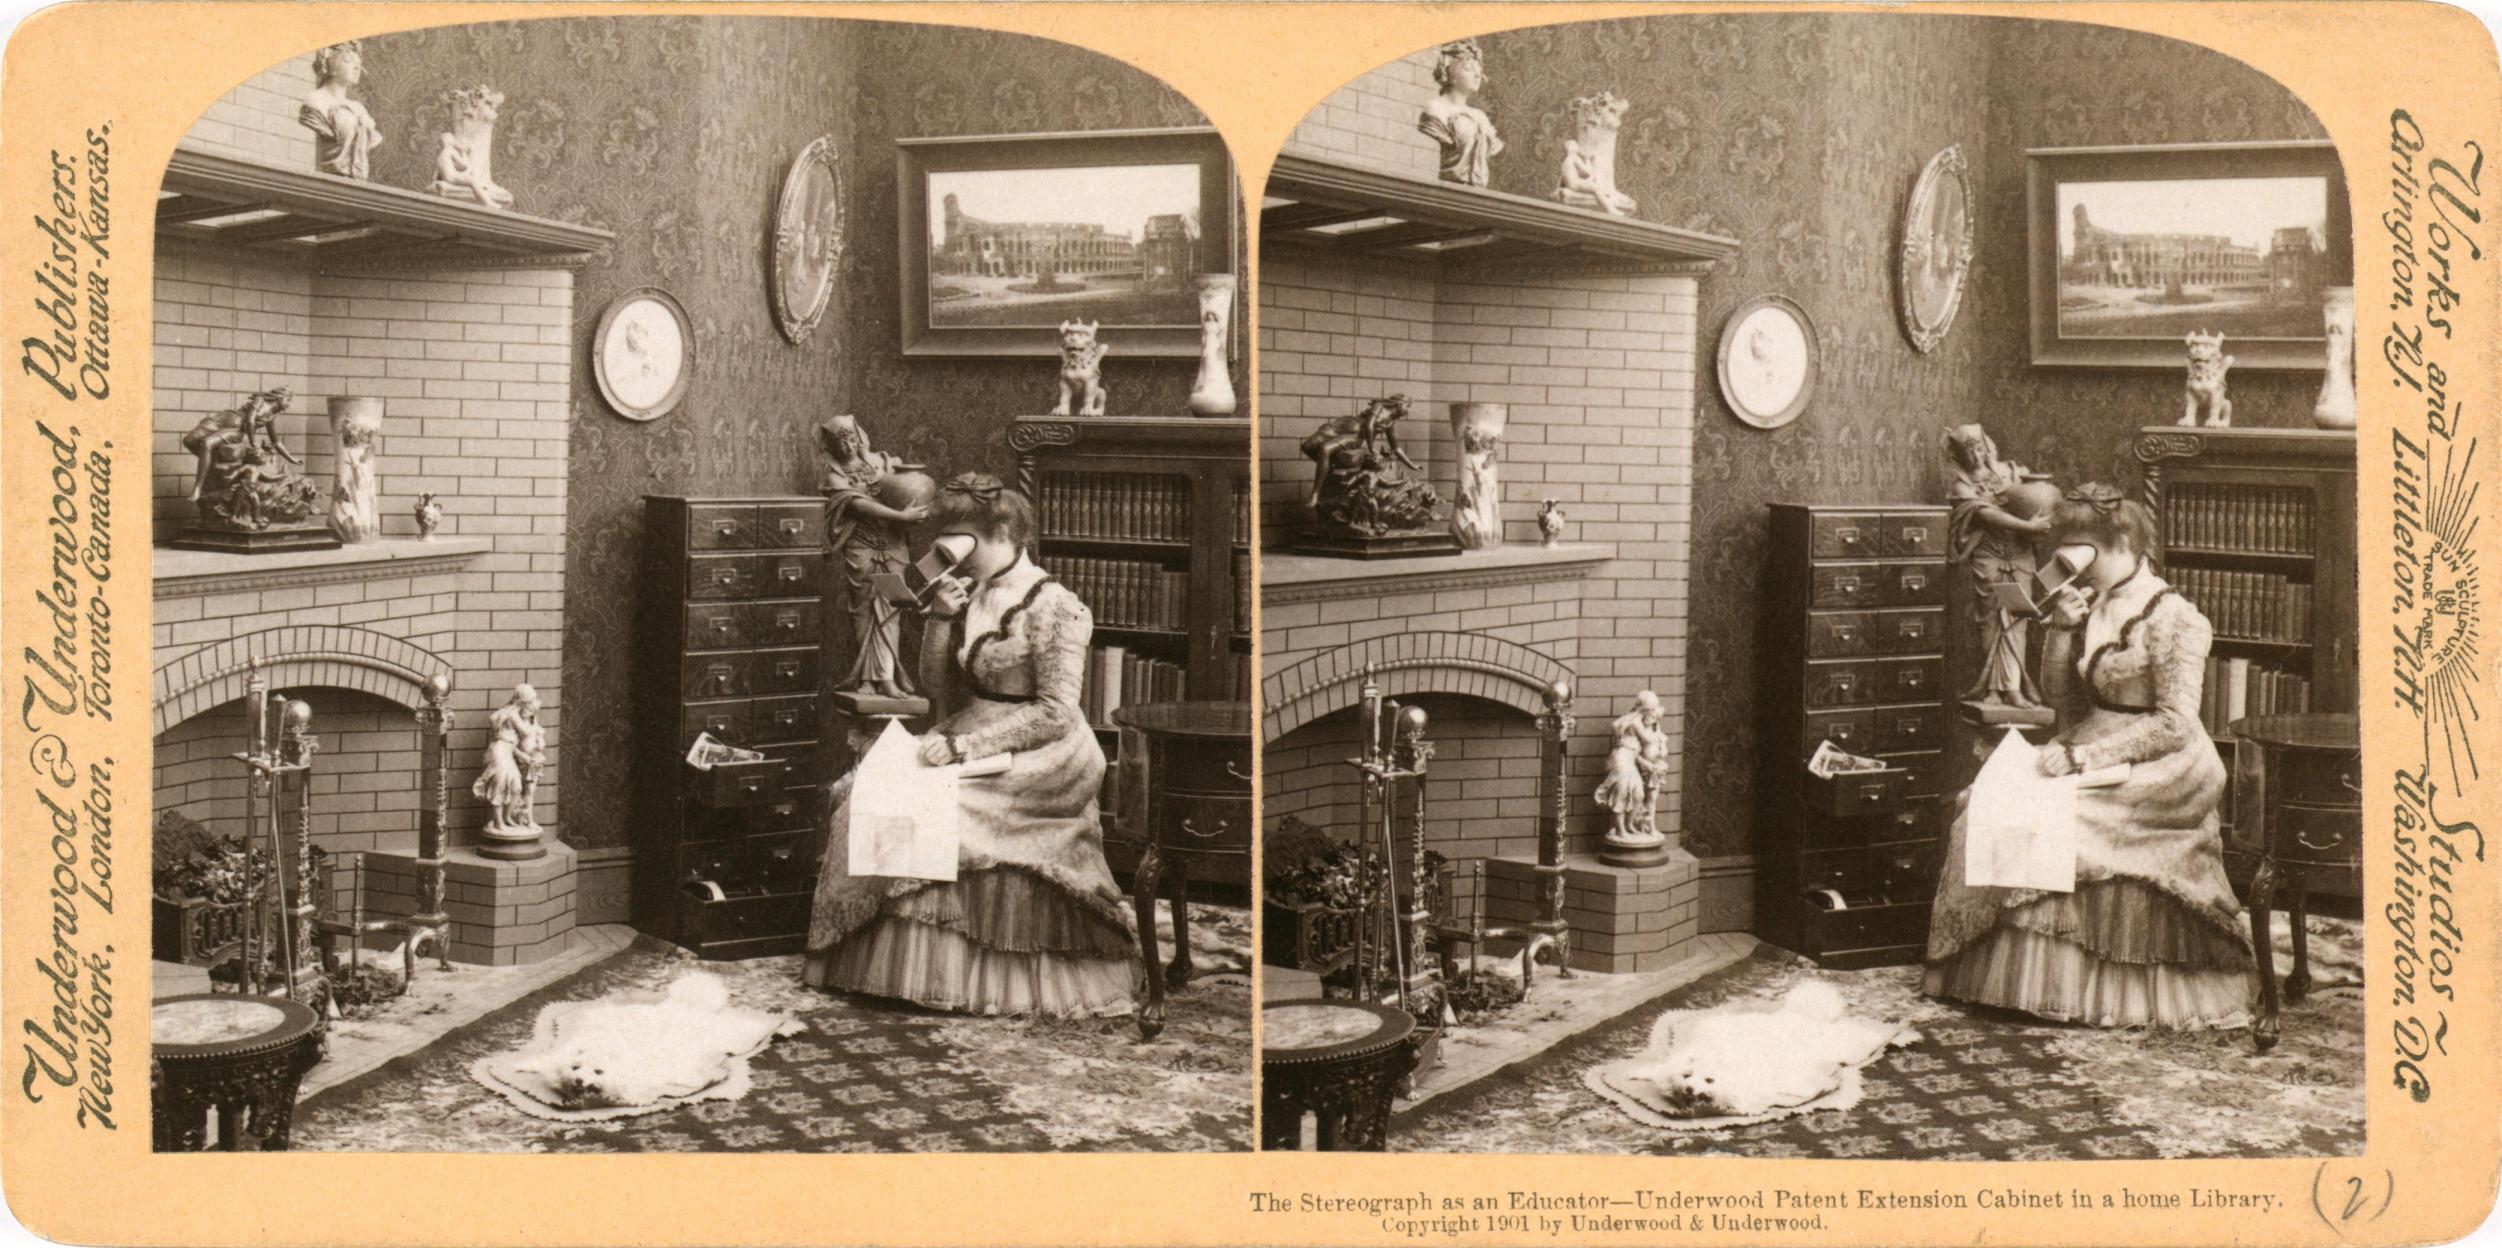 """The stereograph as an educator - Underwood patent extension cabinet in a home library."" Library of Congress description: ""Photograph shows a woman viewing stereographs in her home; she is sitting in front of a fireplace with a cabinet for stereographs on her right."" Date1901 SourceLibrary of Congress Prints and Photographs Division, Stereograph Cards collection. http://hdl.loc.gov/loc.pnp/ppmsca.08781, Underwood & Underwood, PD-US"